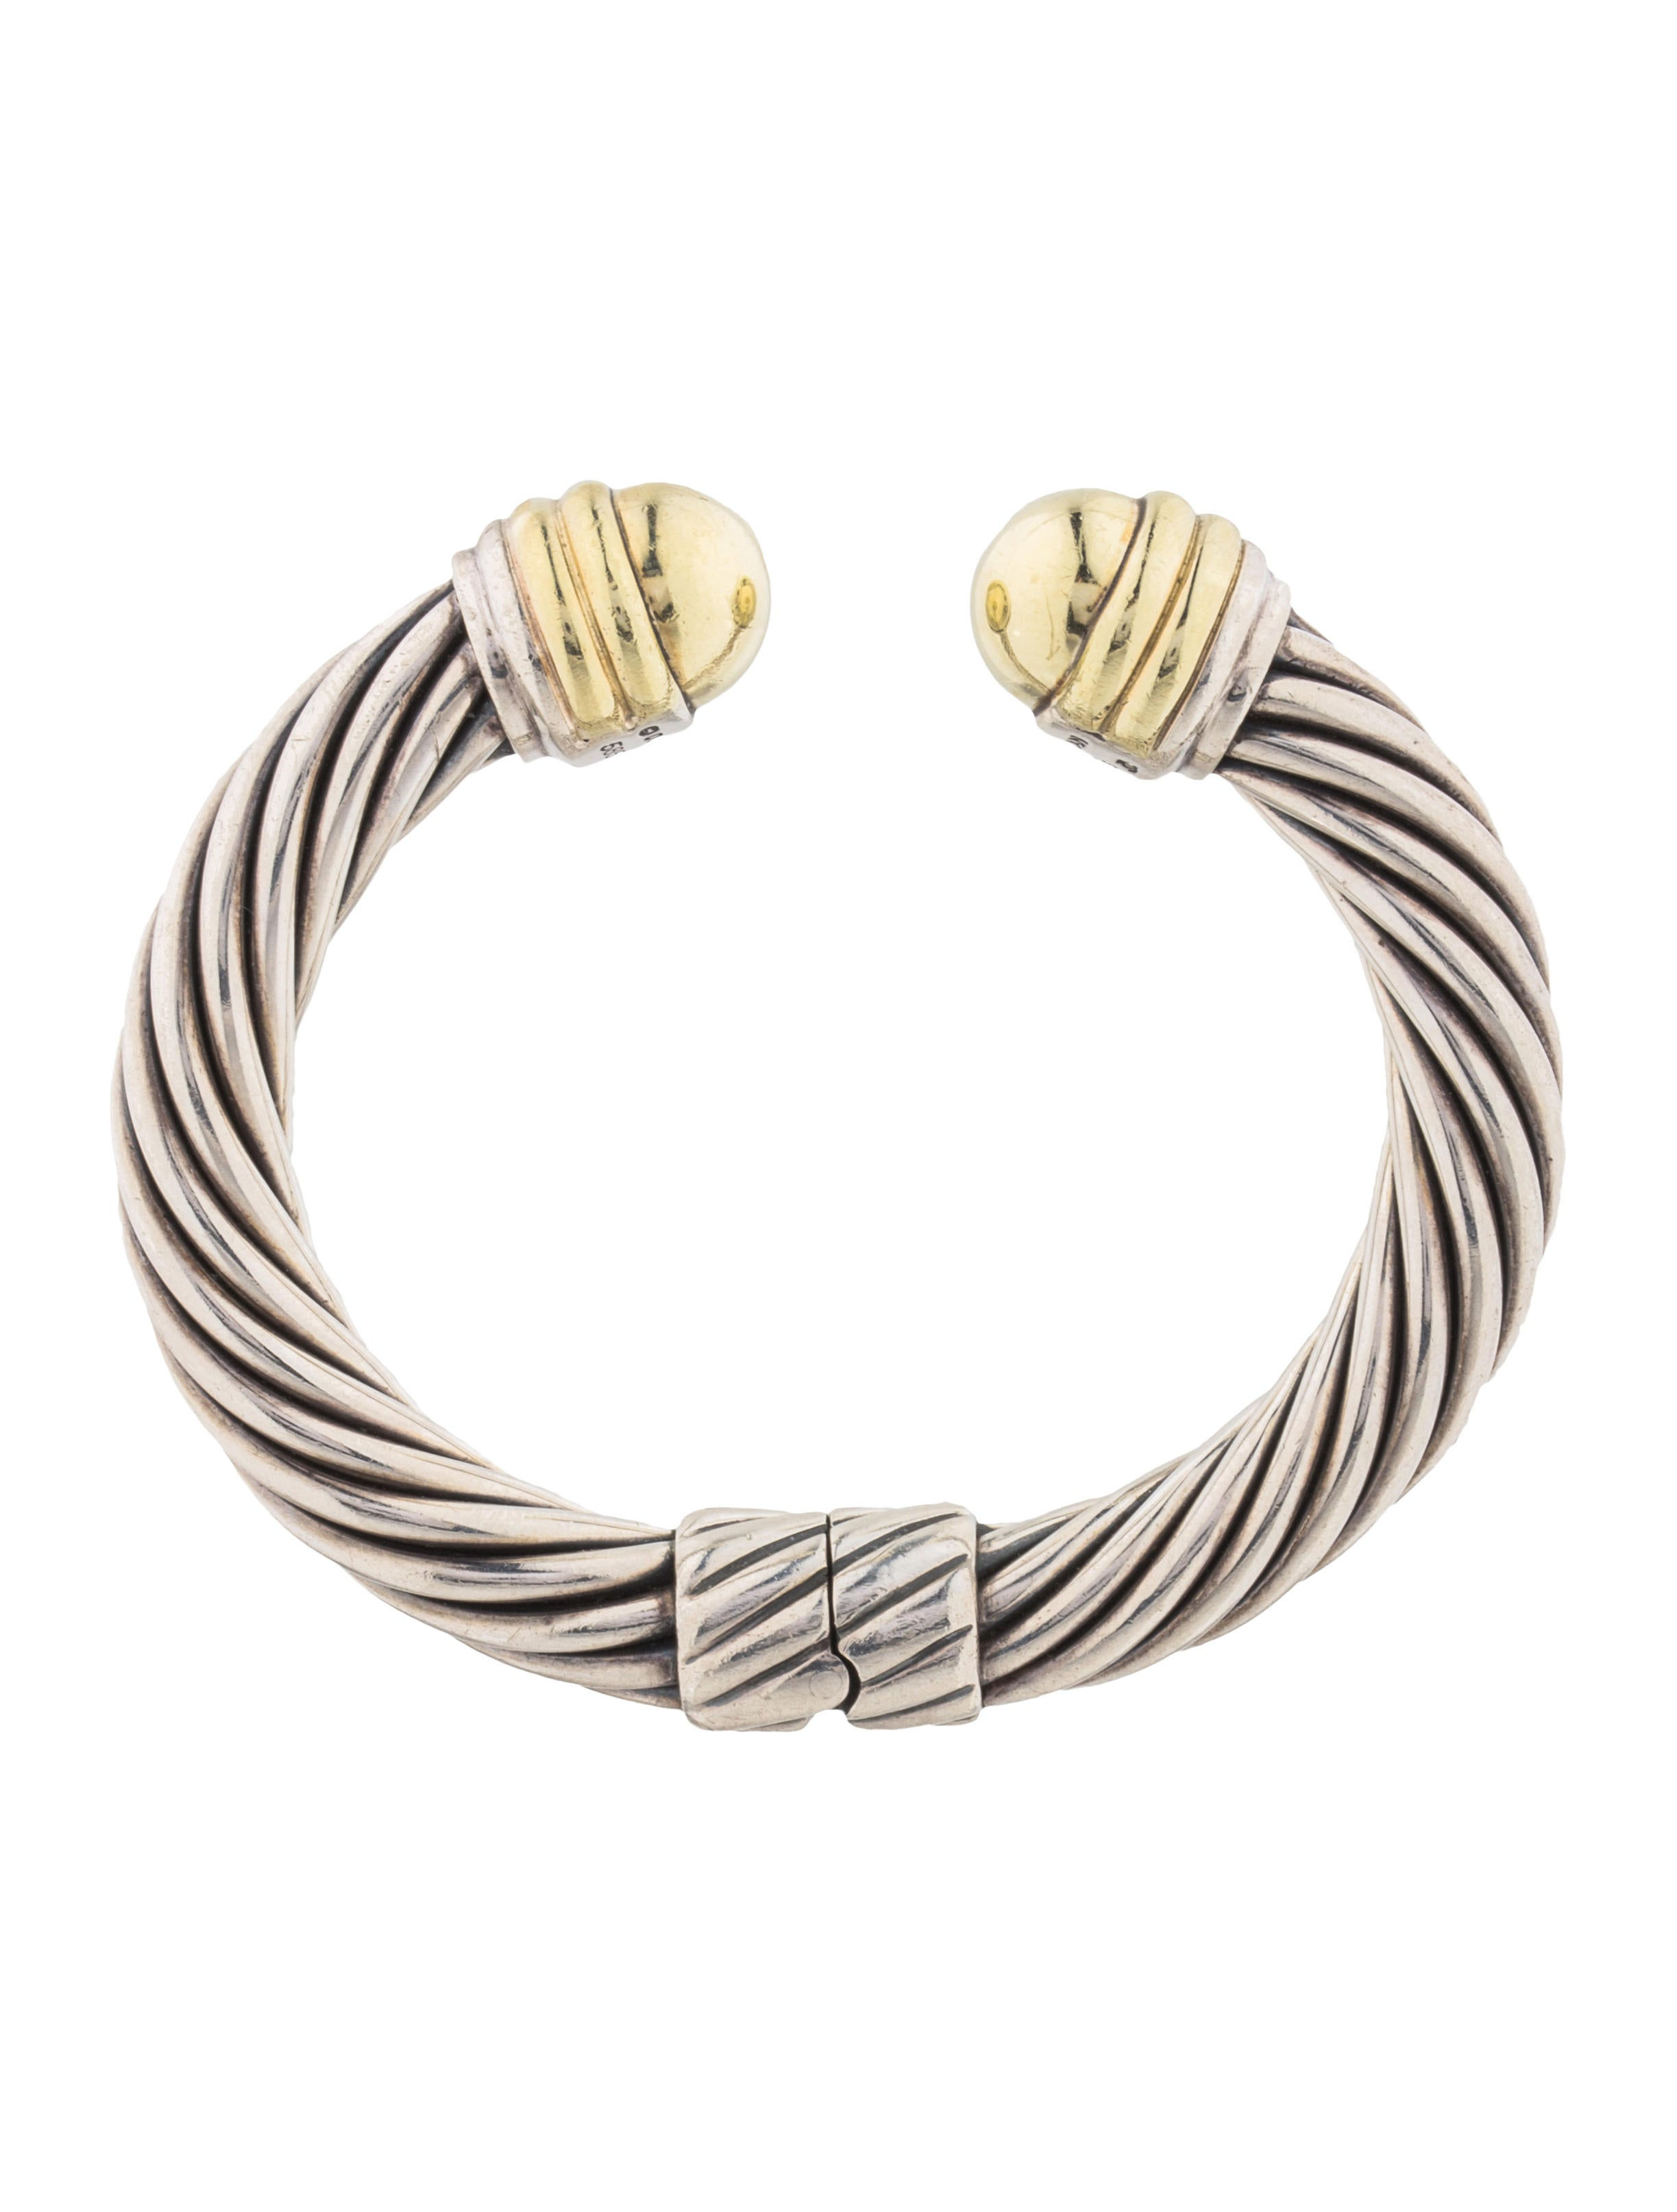 David yurman cable classics bracelet bracelets for David yurman inspired bracelet cable